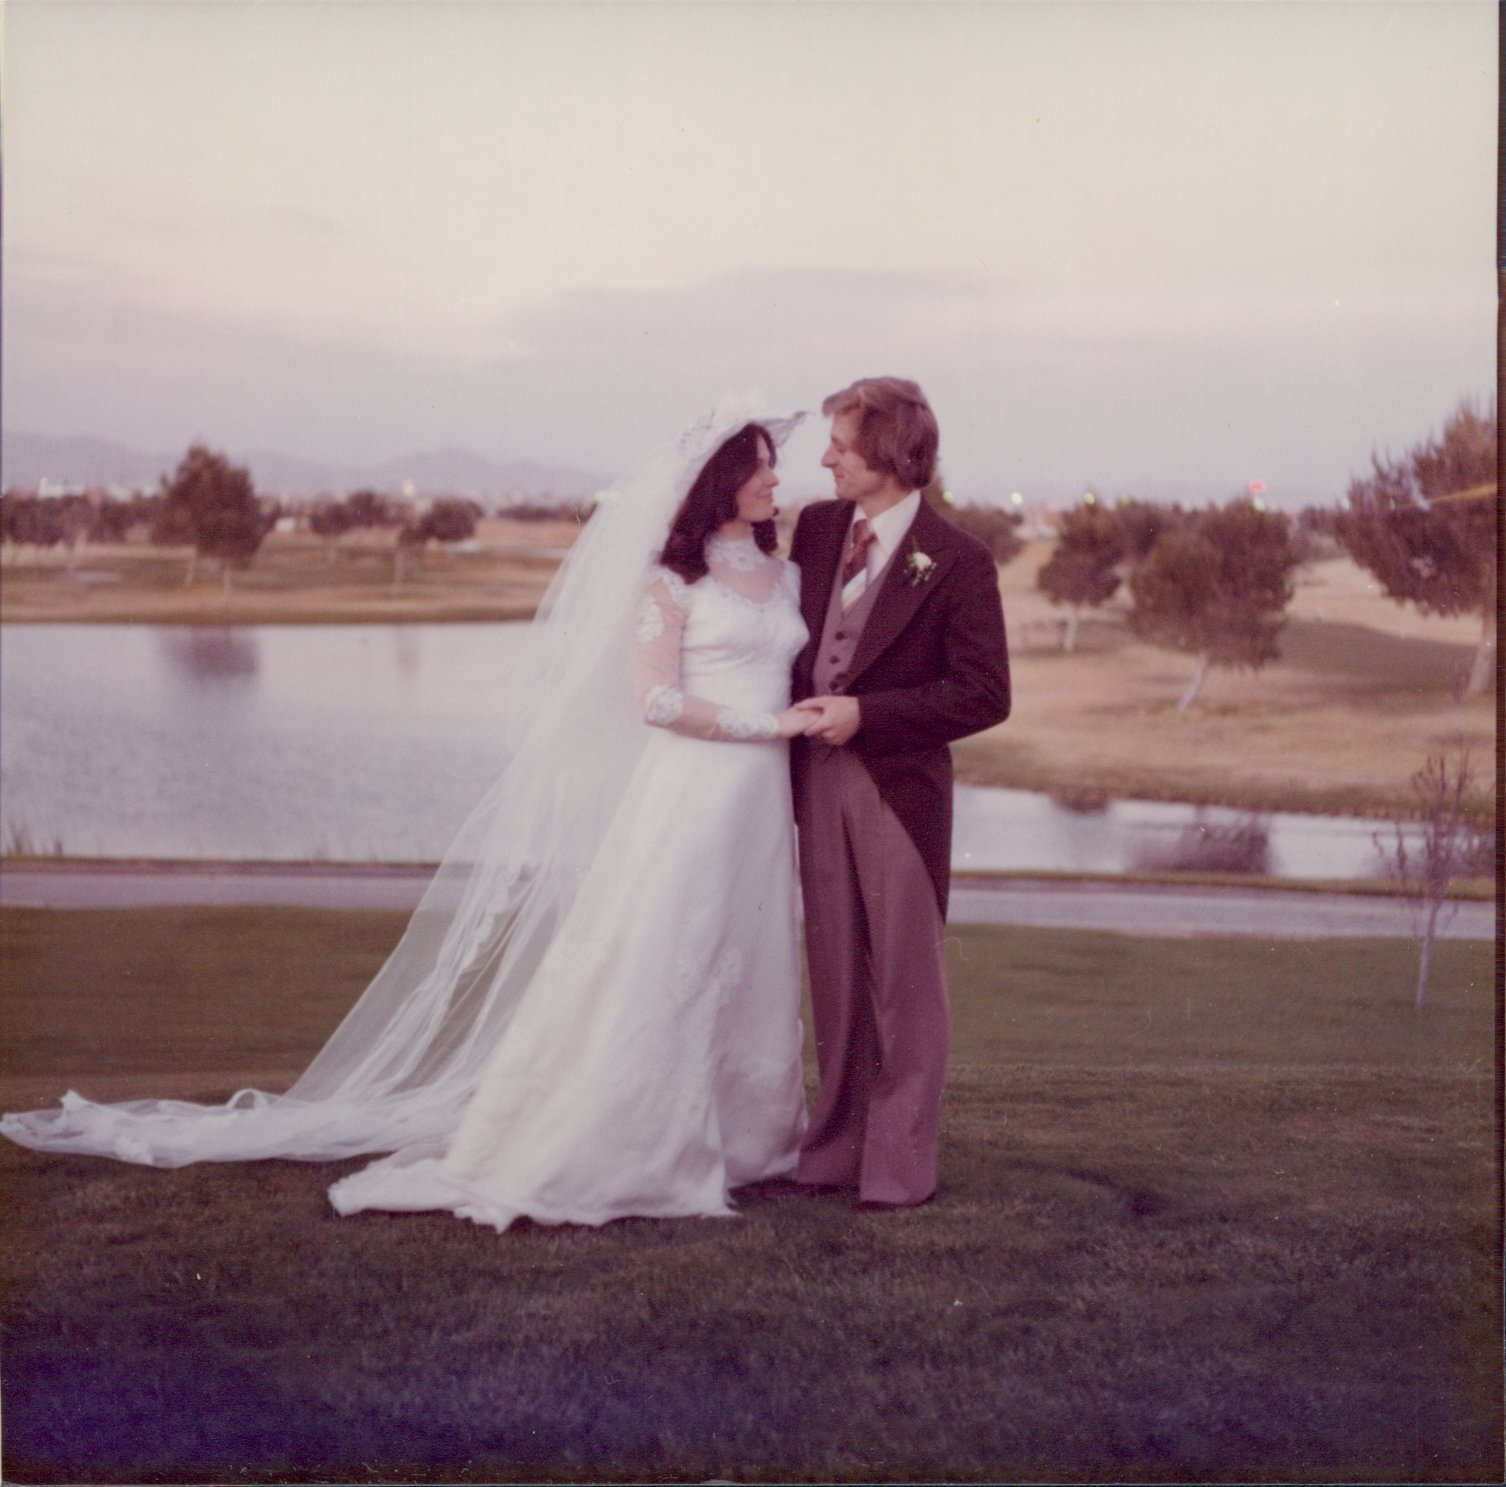 The Beginners Guide To A Life Long Marriage